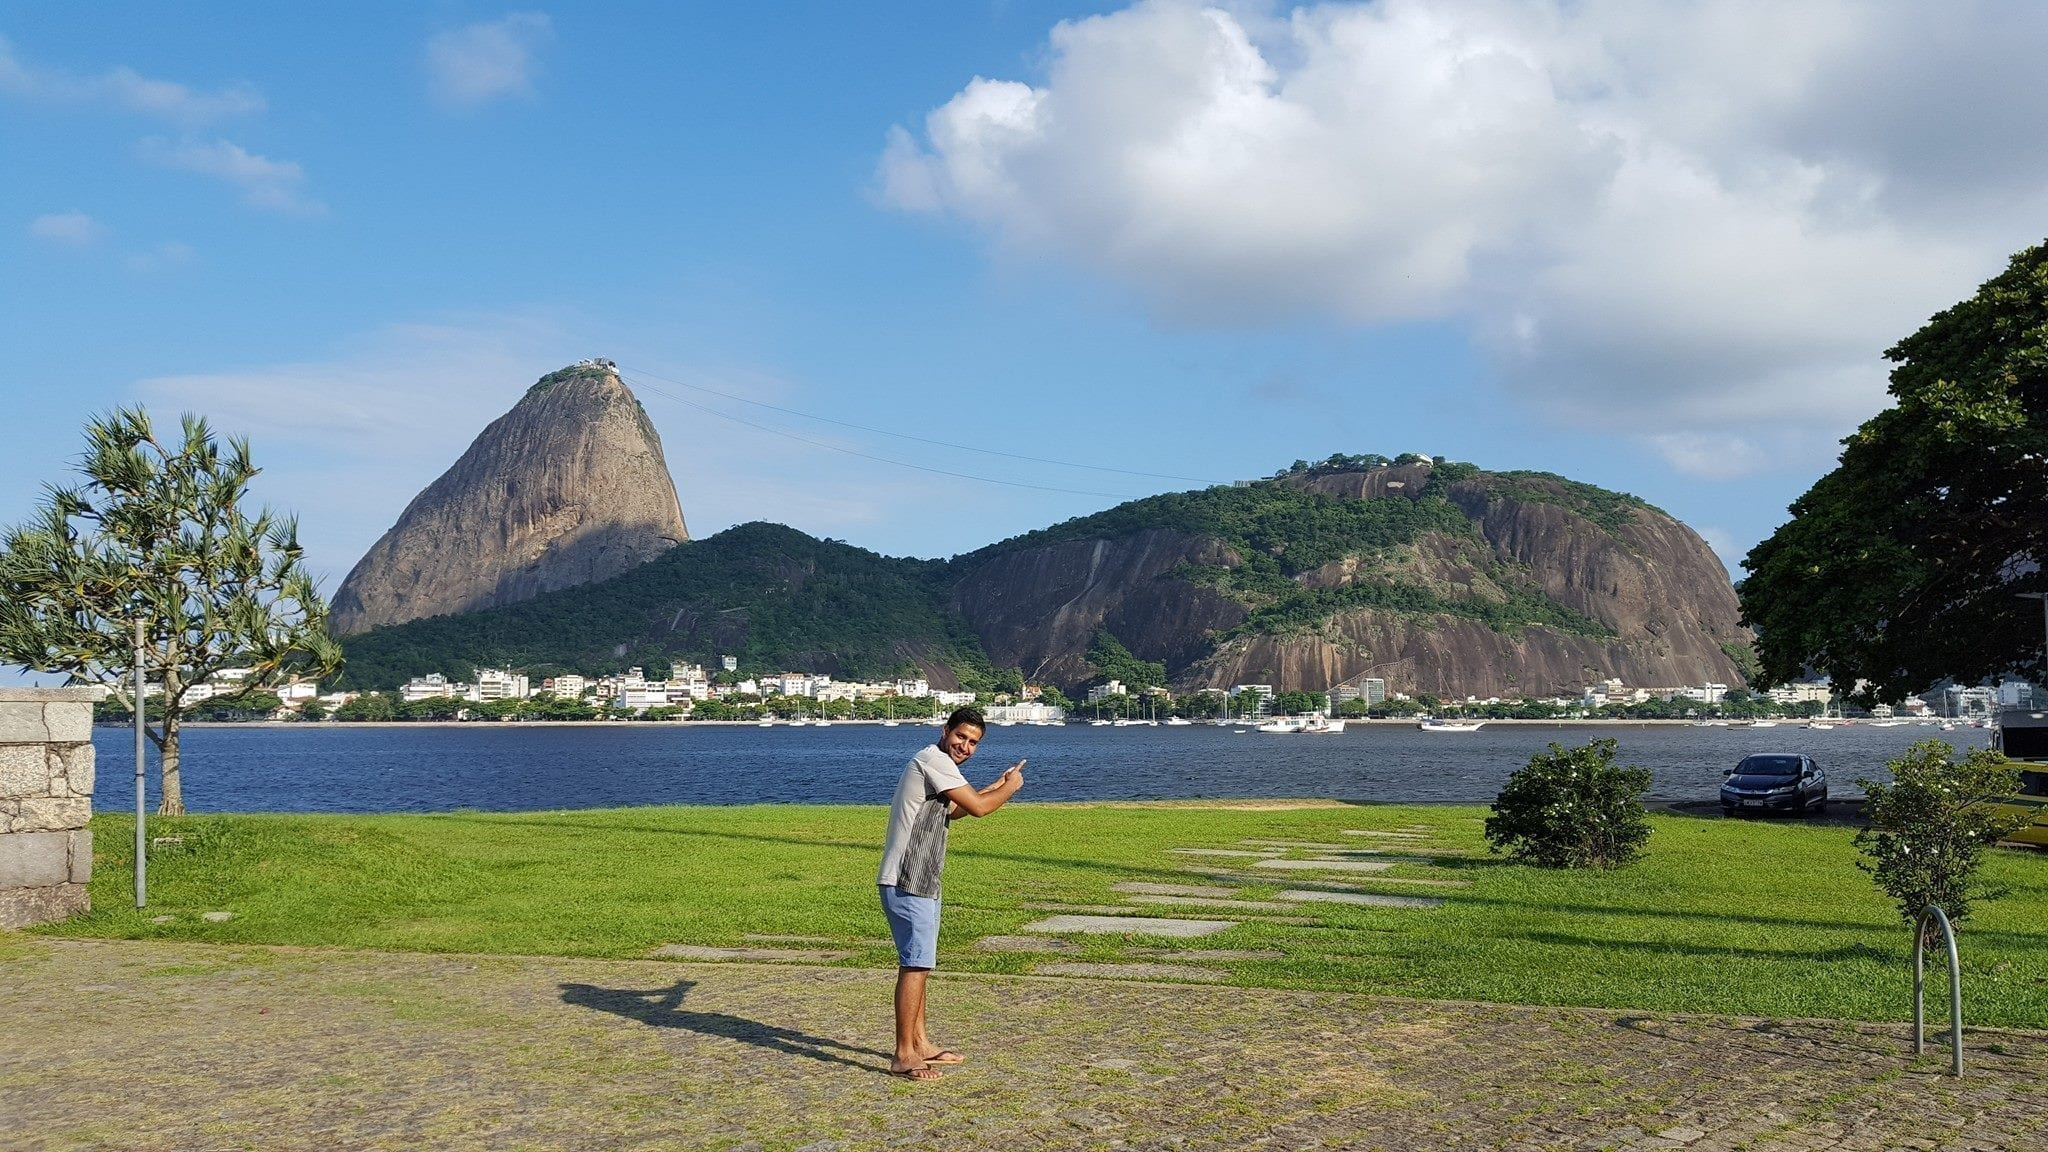 Relaxing walk by the shore. View of Pão de Açúcar from Botafogo.